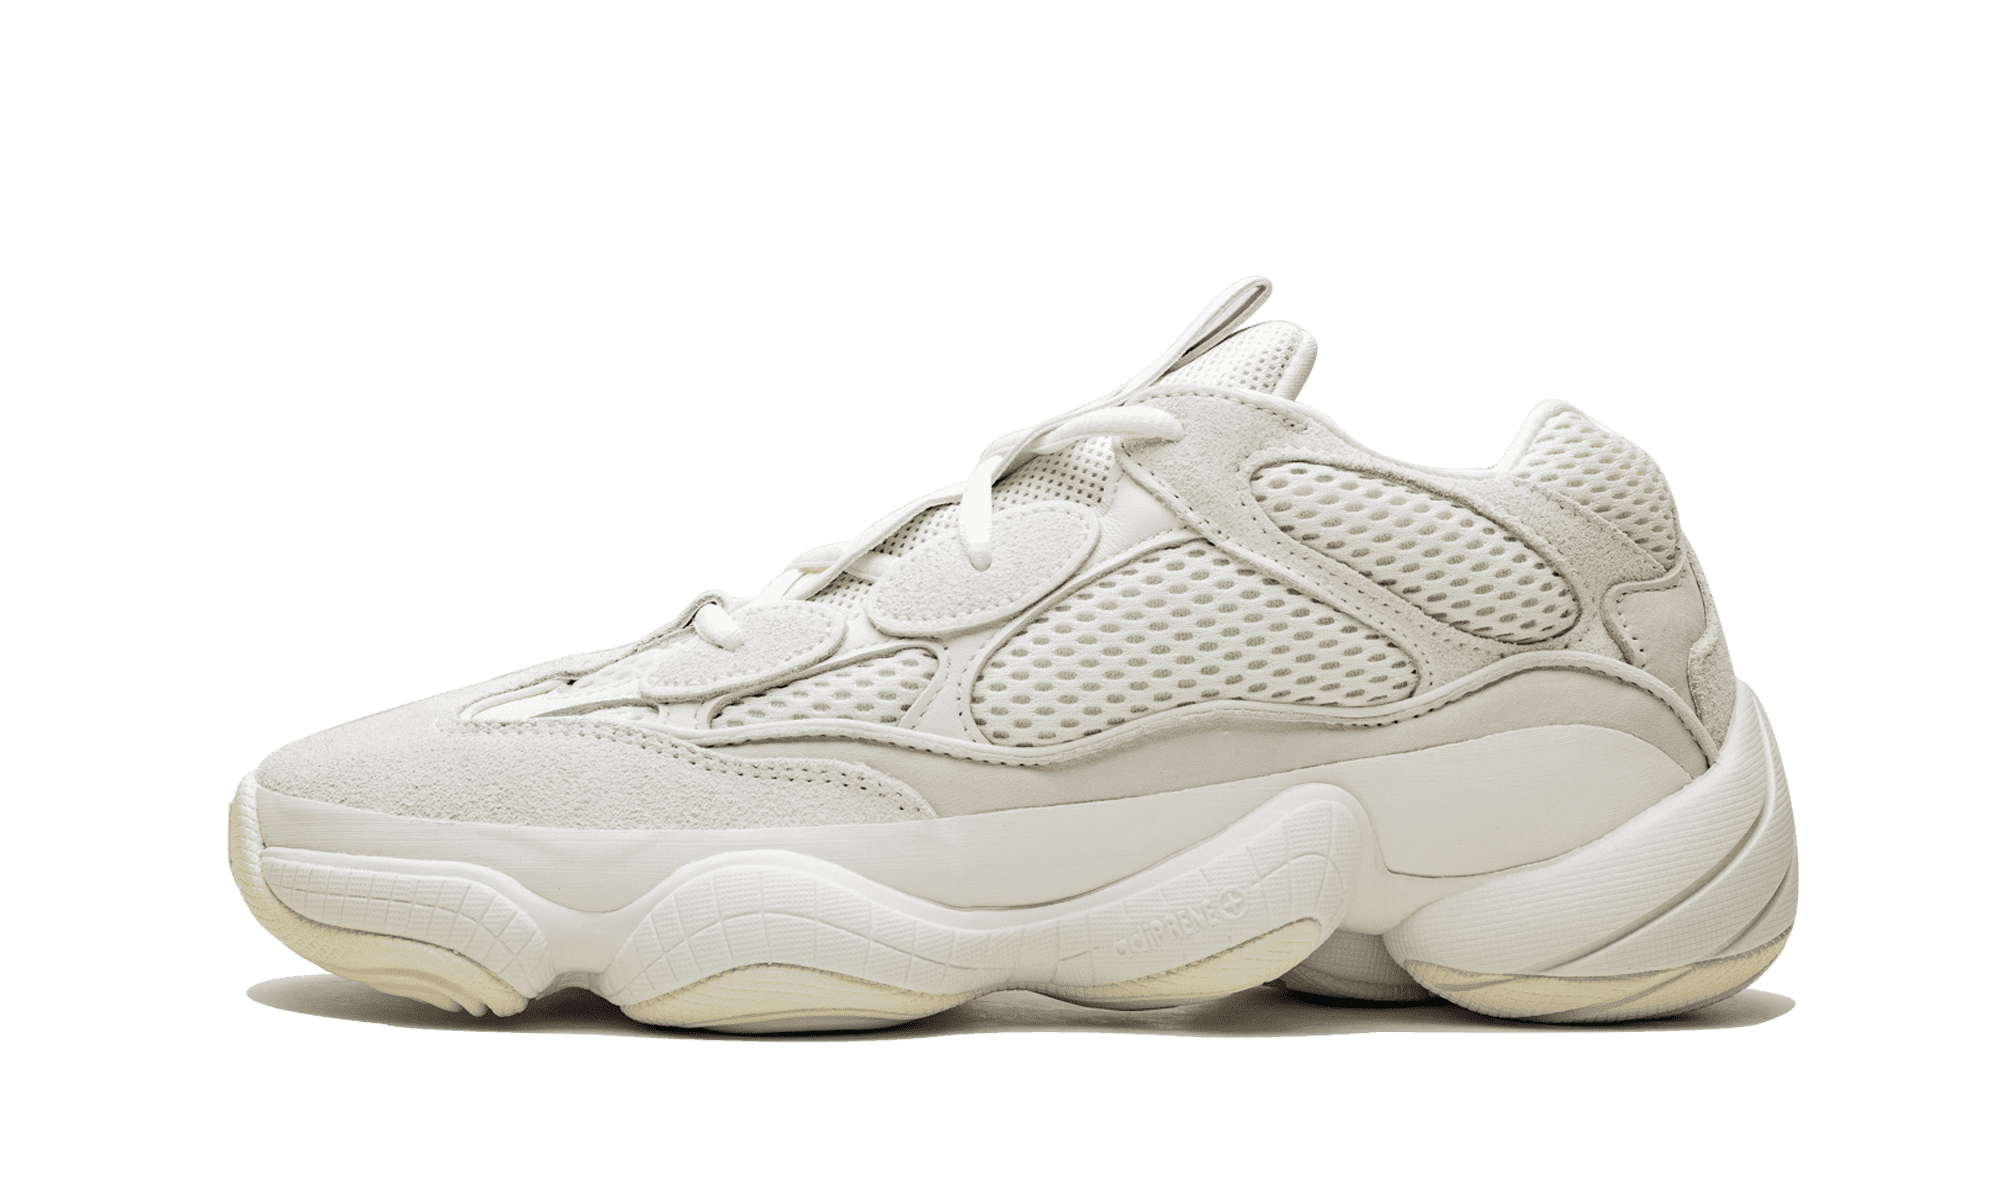 YEEZY 500 BONE WHITE